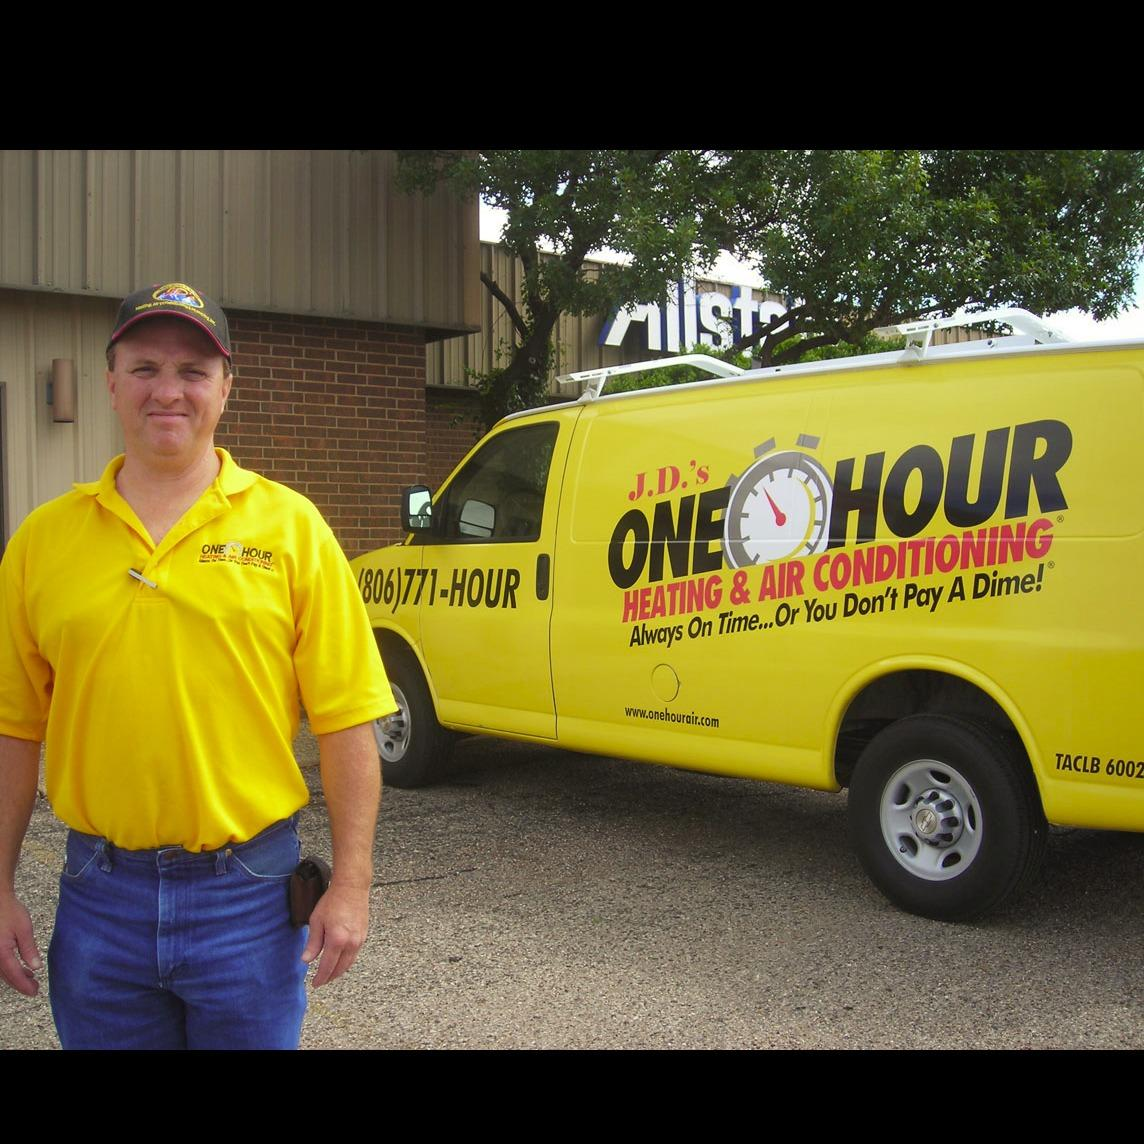 J.D.'s One Hour Heating & Air